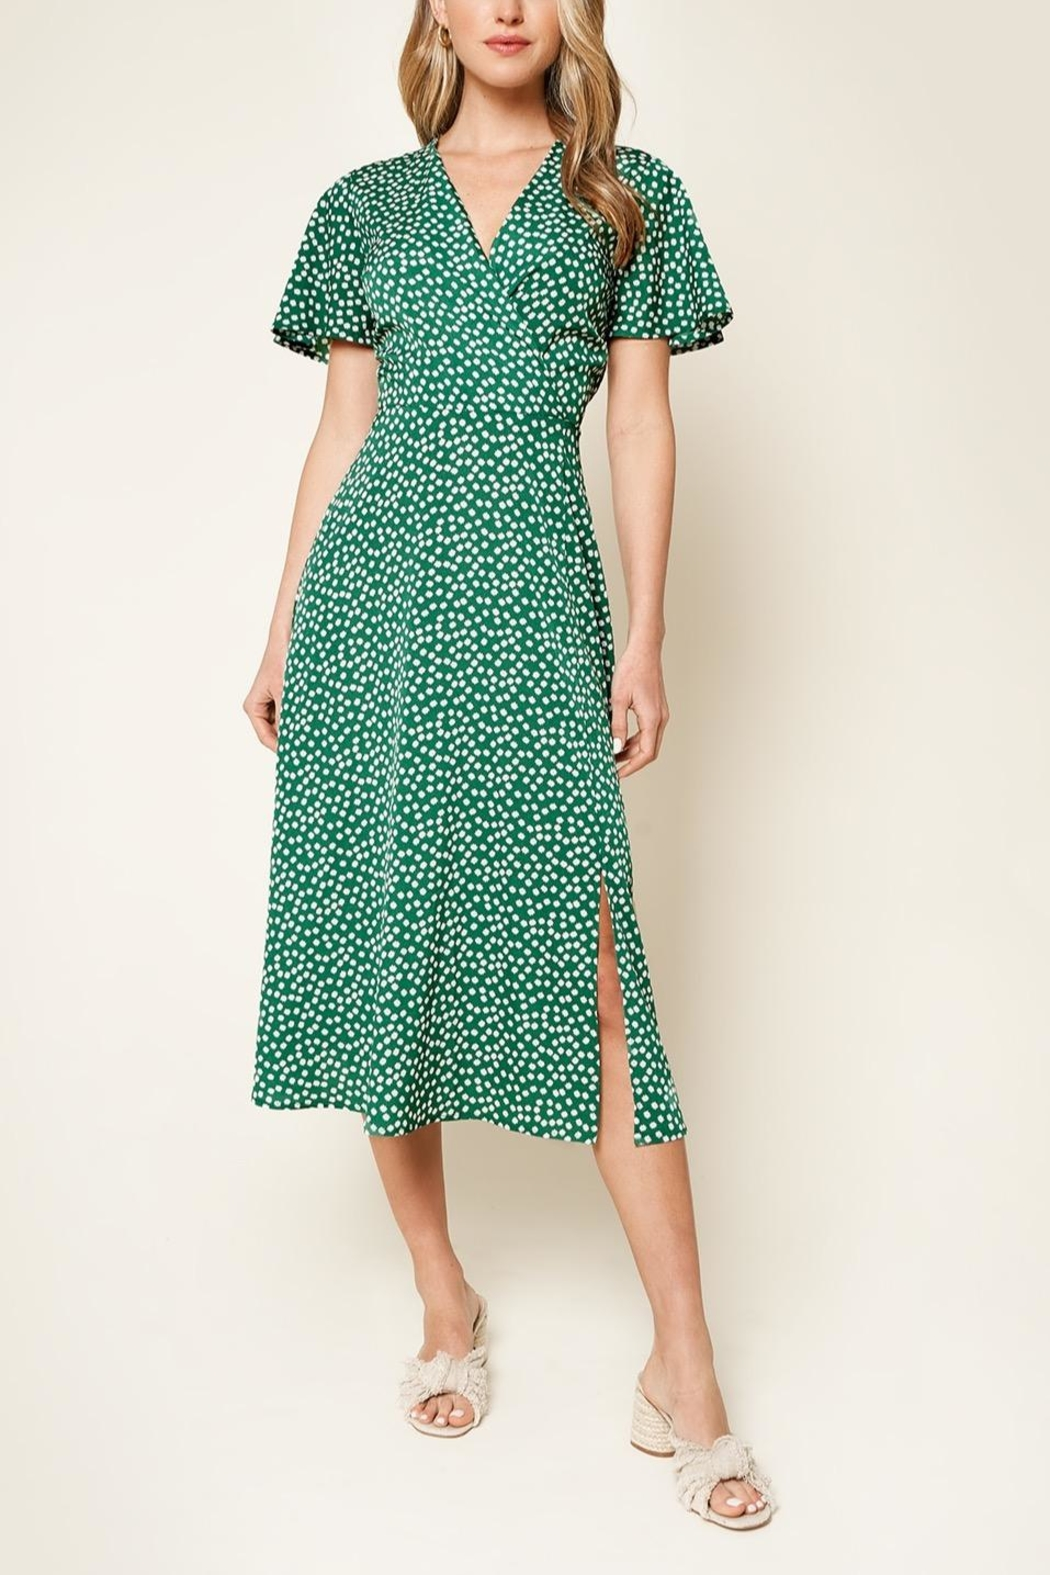 Sugarlips Floral Faux Wrap Midi Dress - Main Image